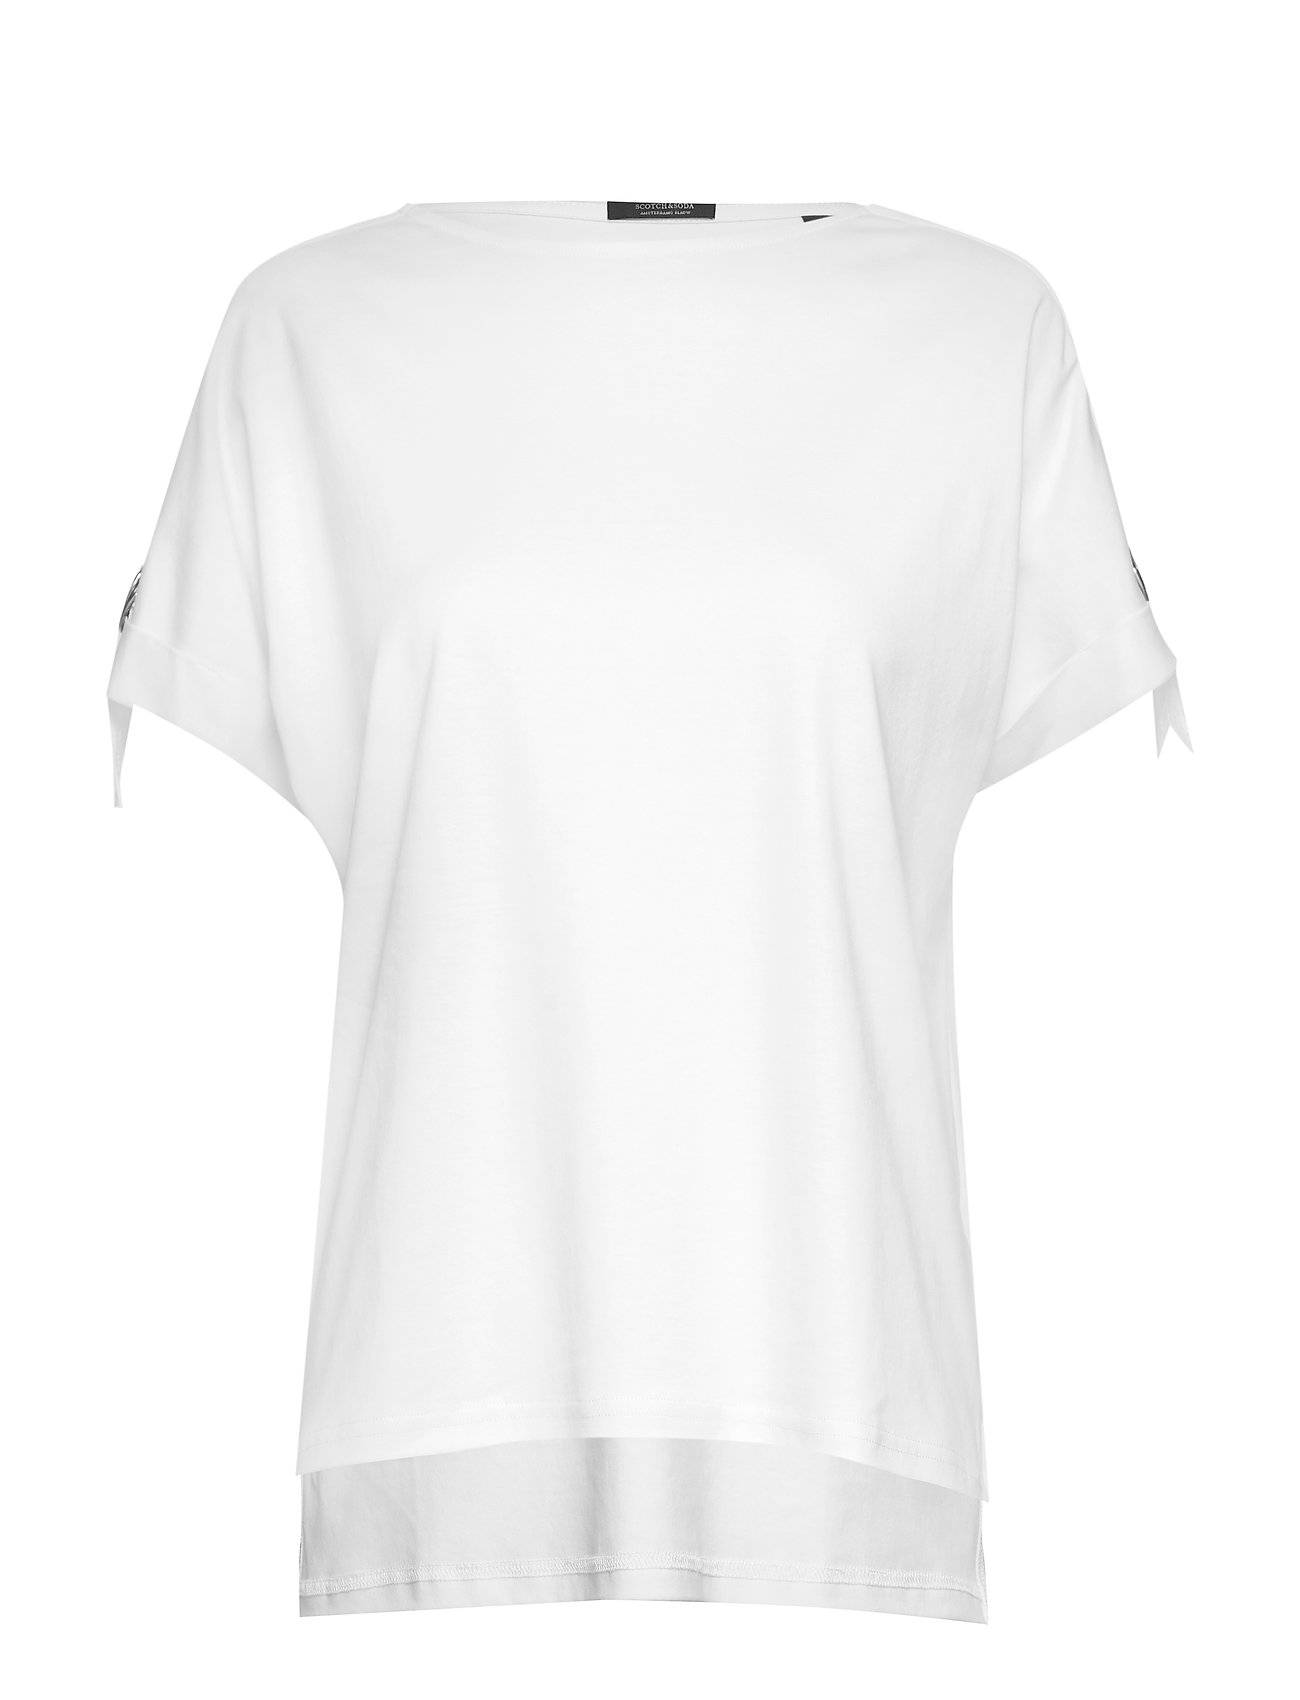 Image of Scotch & Soda Seasonal Tee With Adjustable Sleeves In Clean Quality T-shirts & Tops Short-sleeved Valkoinen Scotch & Soda